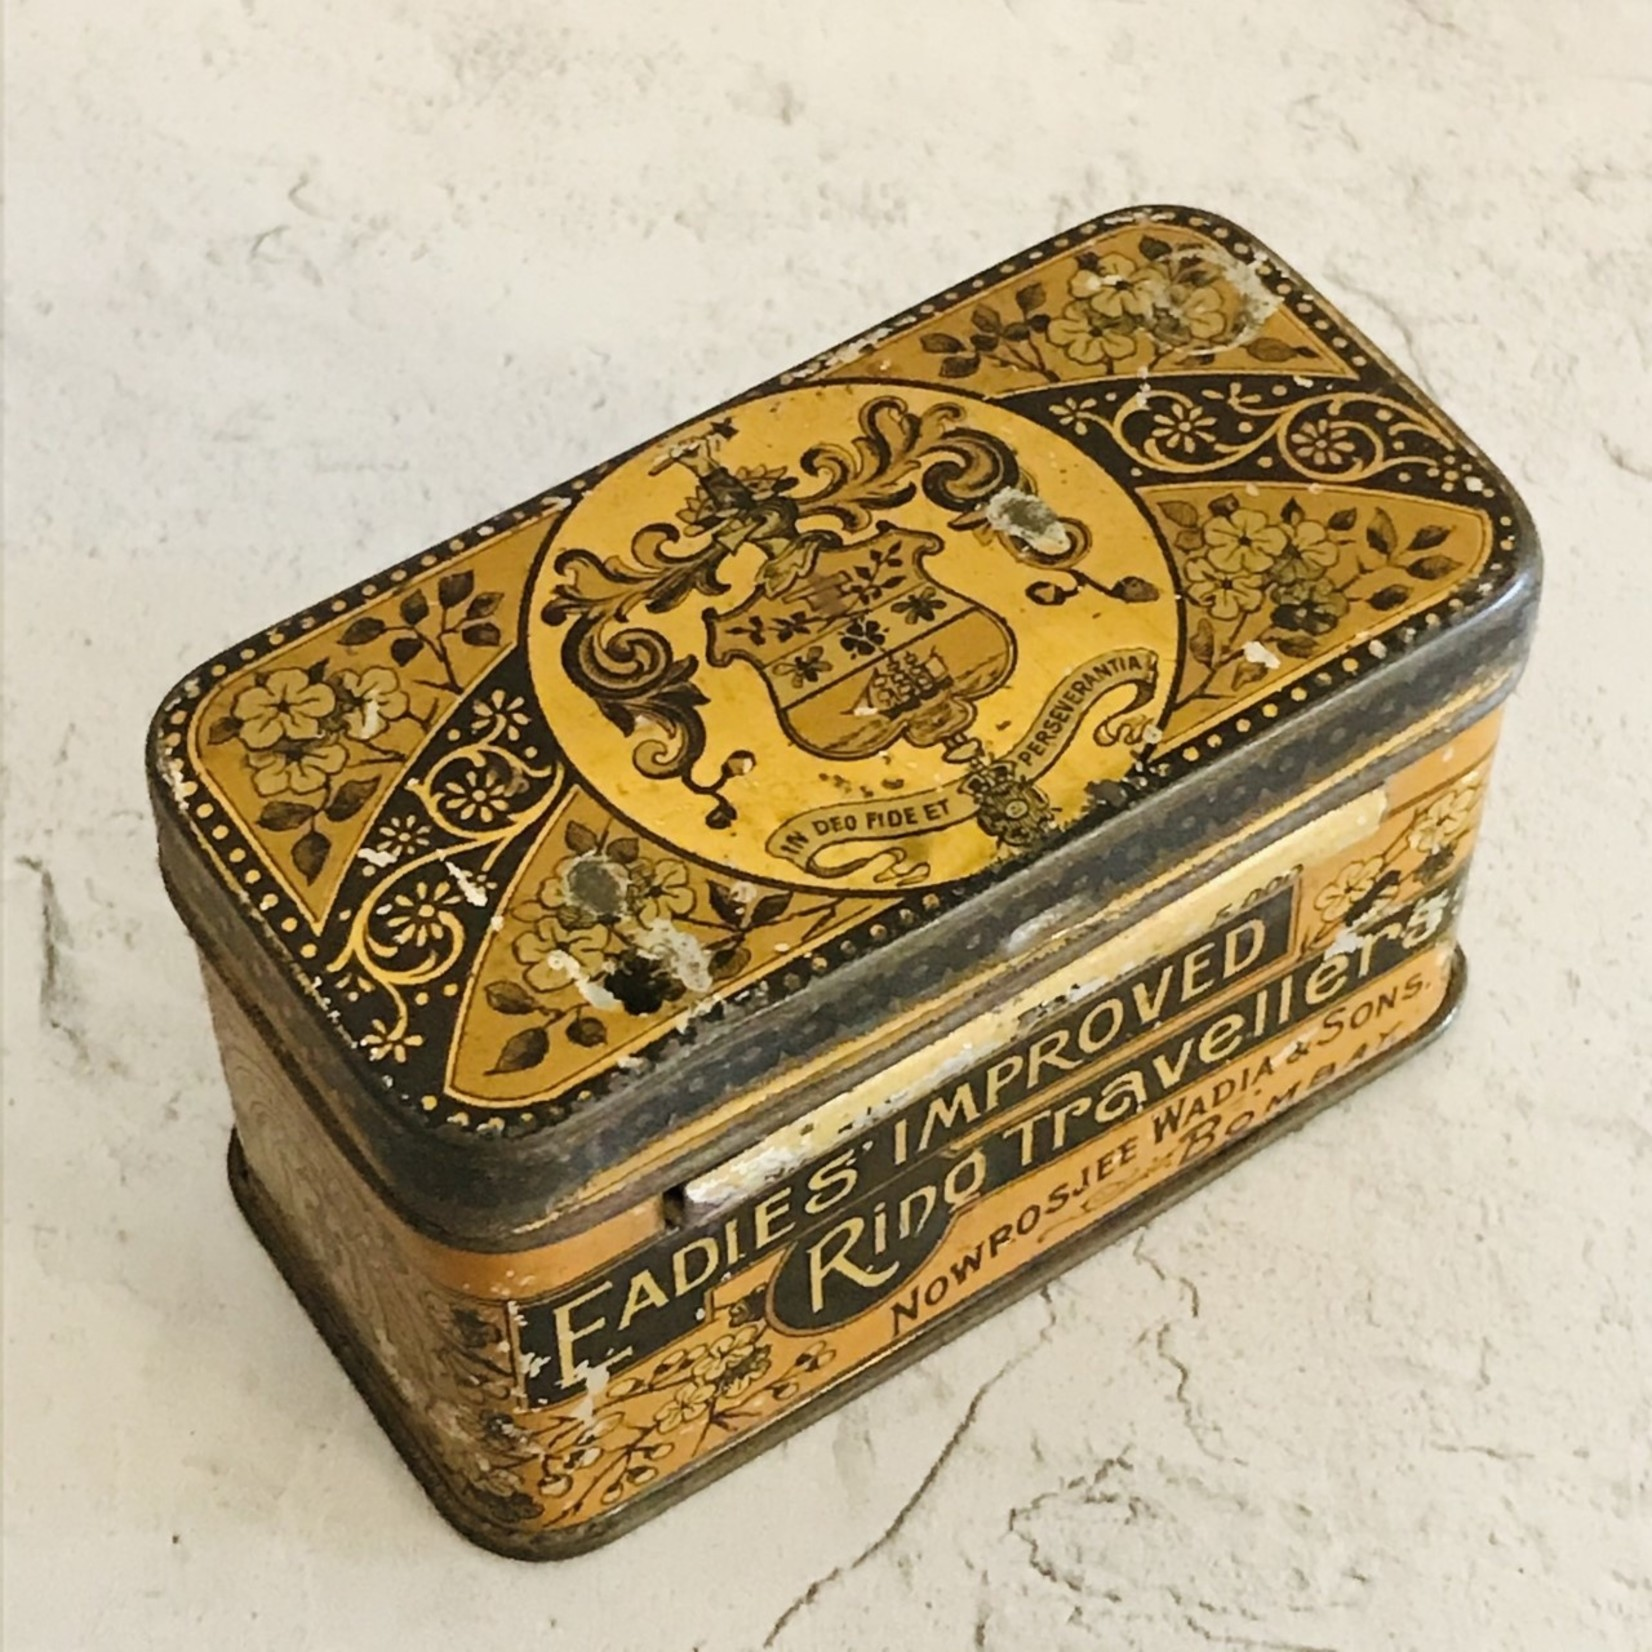 Vintage Container from Bombay